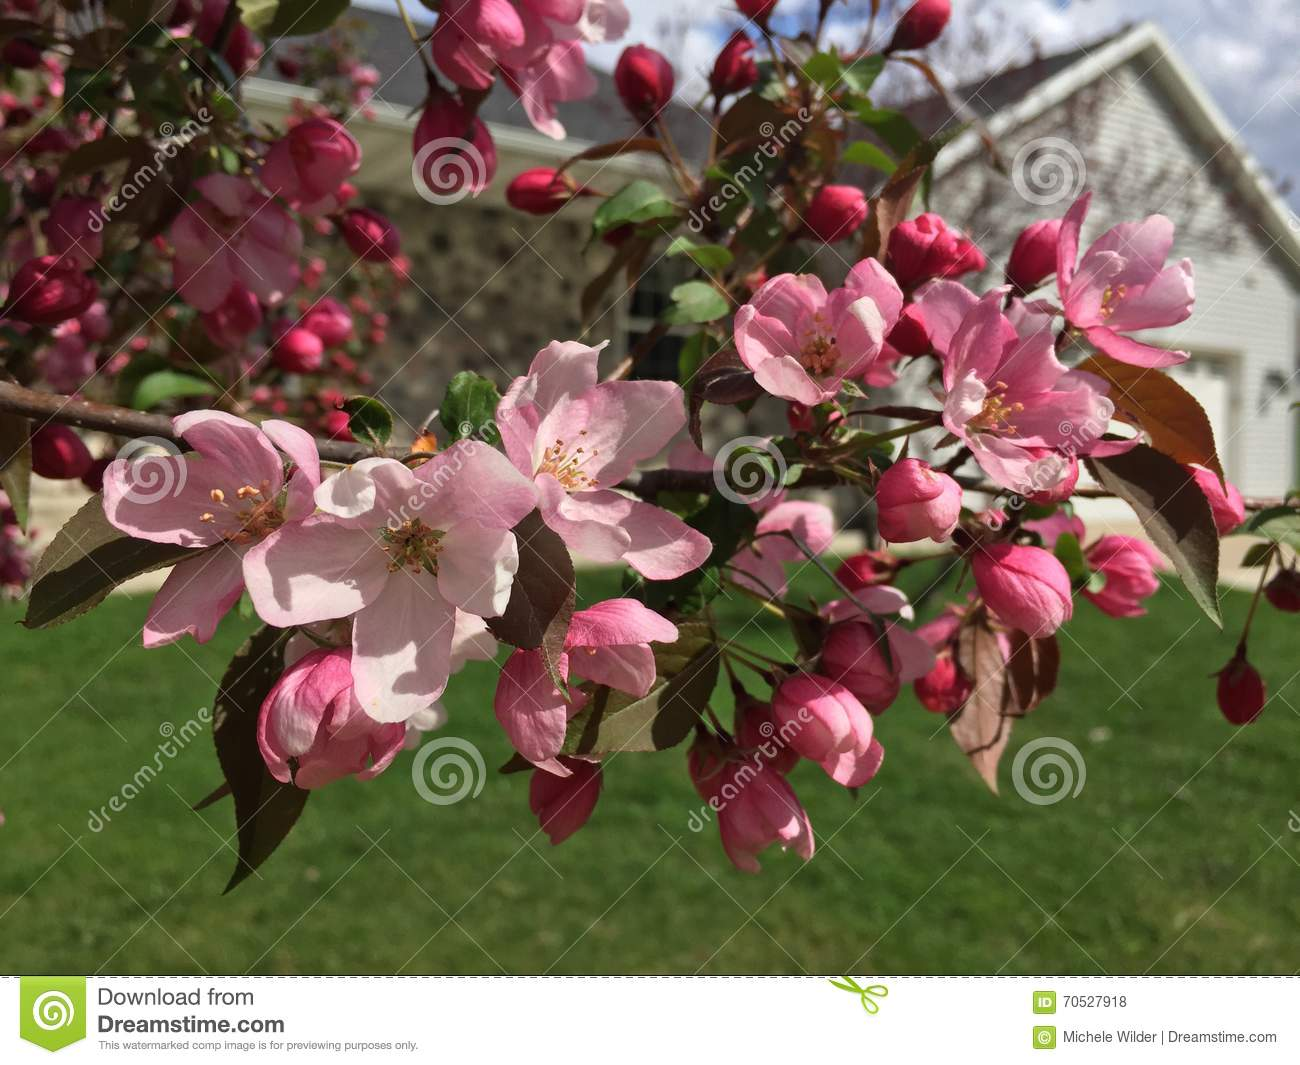 Pink cherry blossoms stock photo image of flower buds 70527918 dark pink buds open into light pink flowers on these ornamental cherry trees mightylinksfo